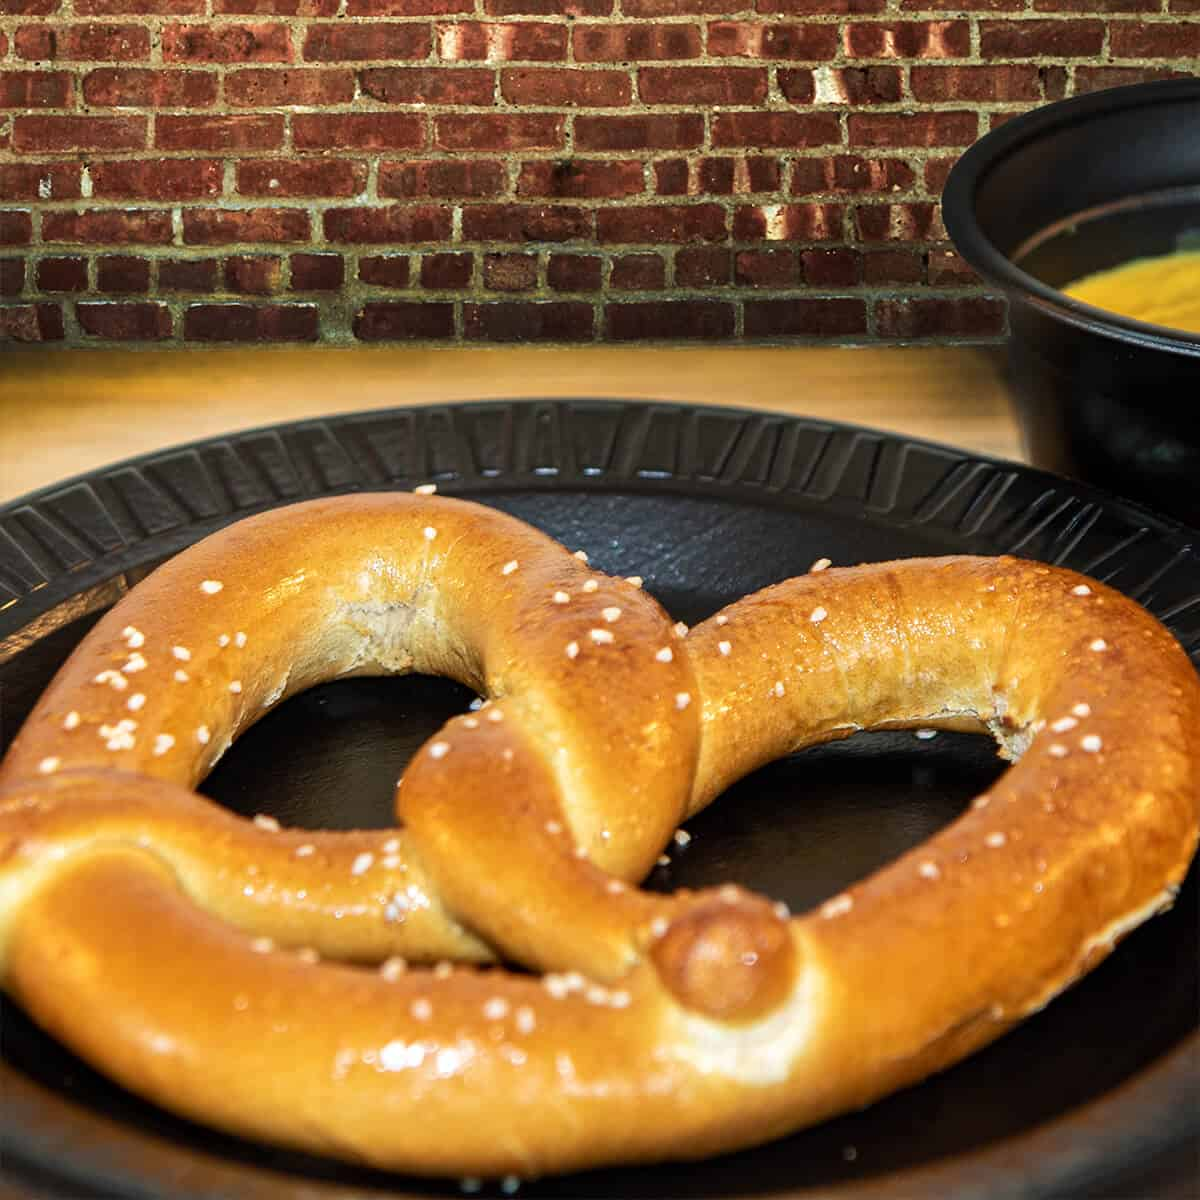 Hot pretzel salted with cheese